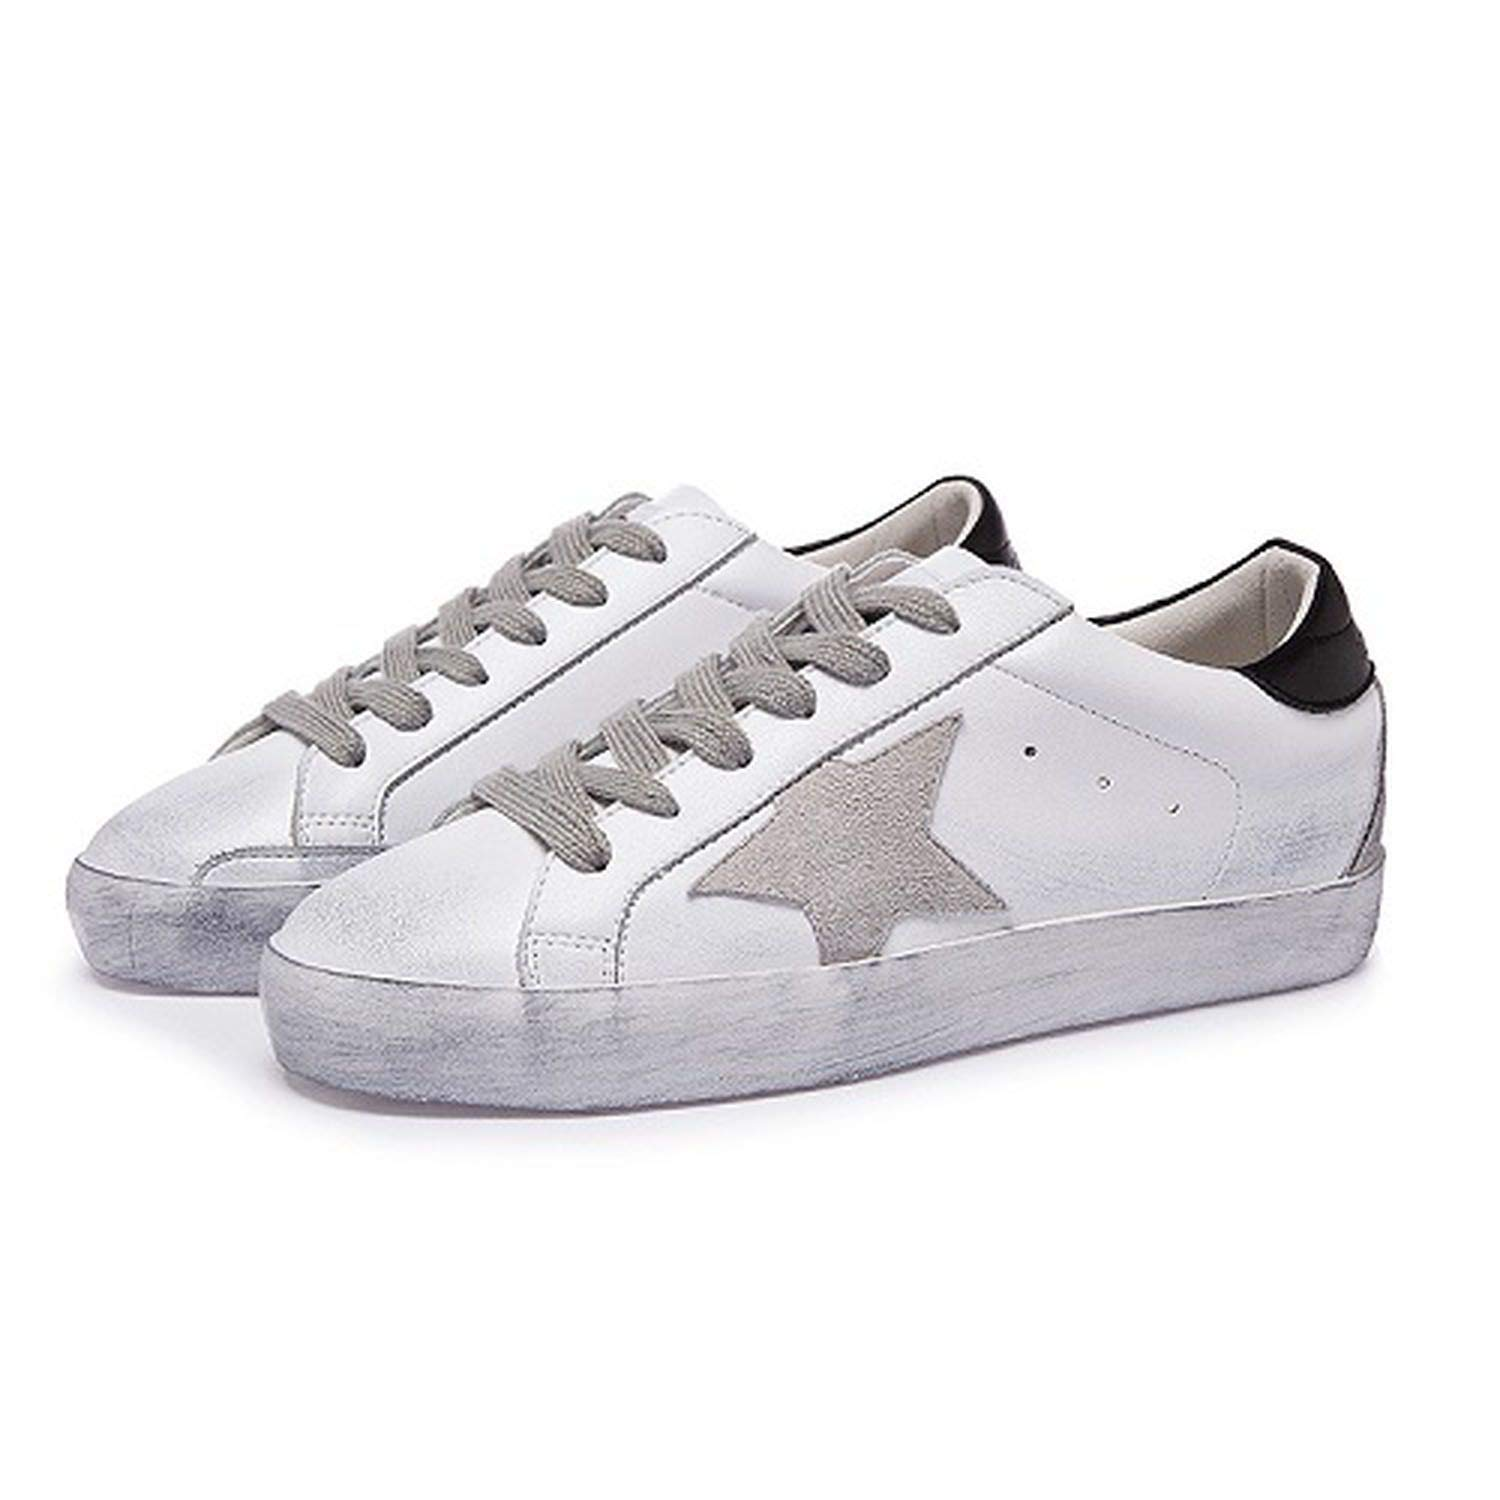 Amazon.com | Classic Brand Italy Golden Genuine Leather Casual Shoes Women Trainers Goose Star Vintage | Fashion Sneakers